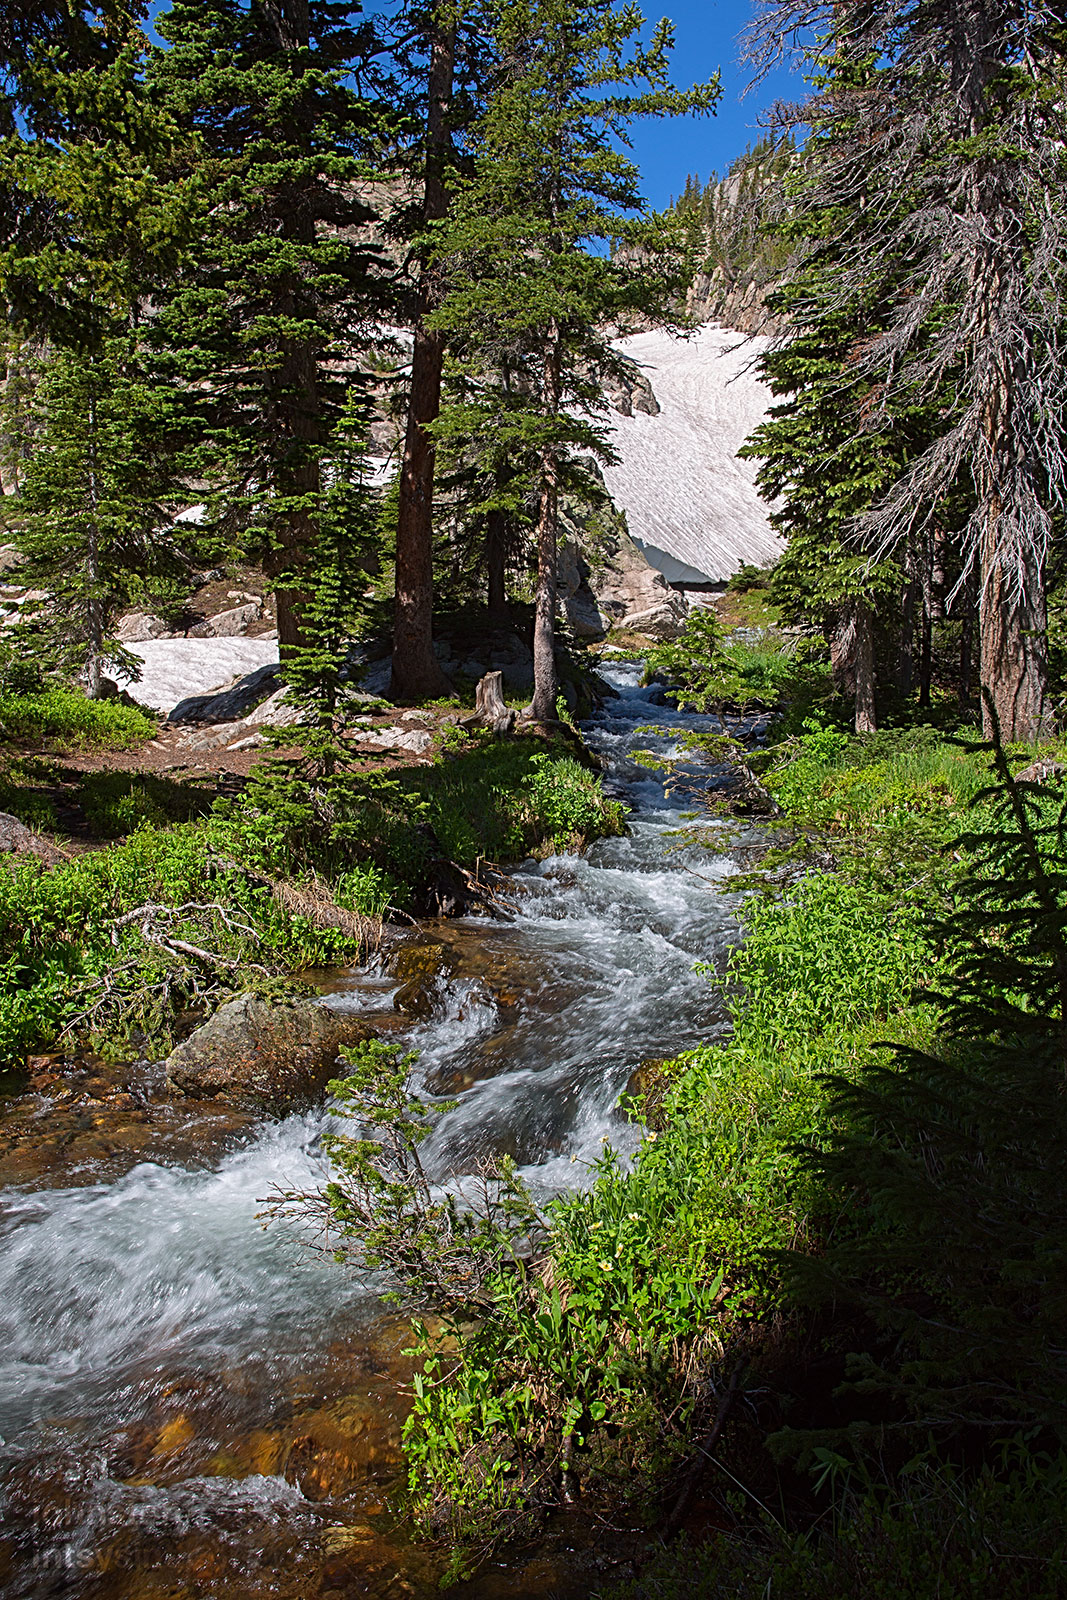 The head of St. Vrain Creek as it emerges from a snow bank below Bluebird Lake.